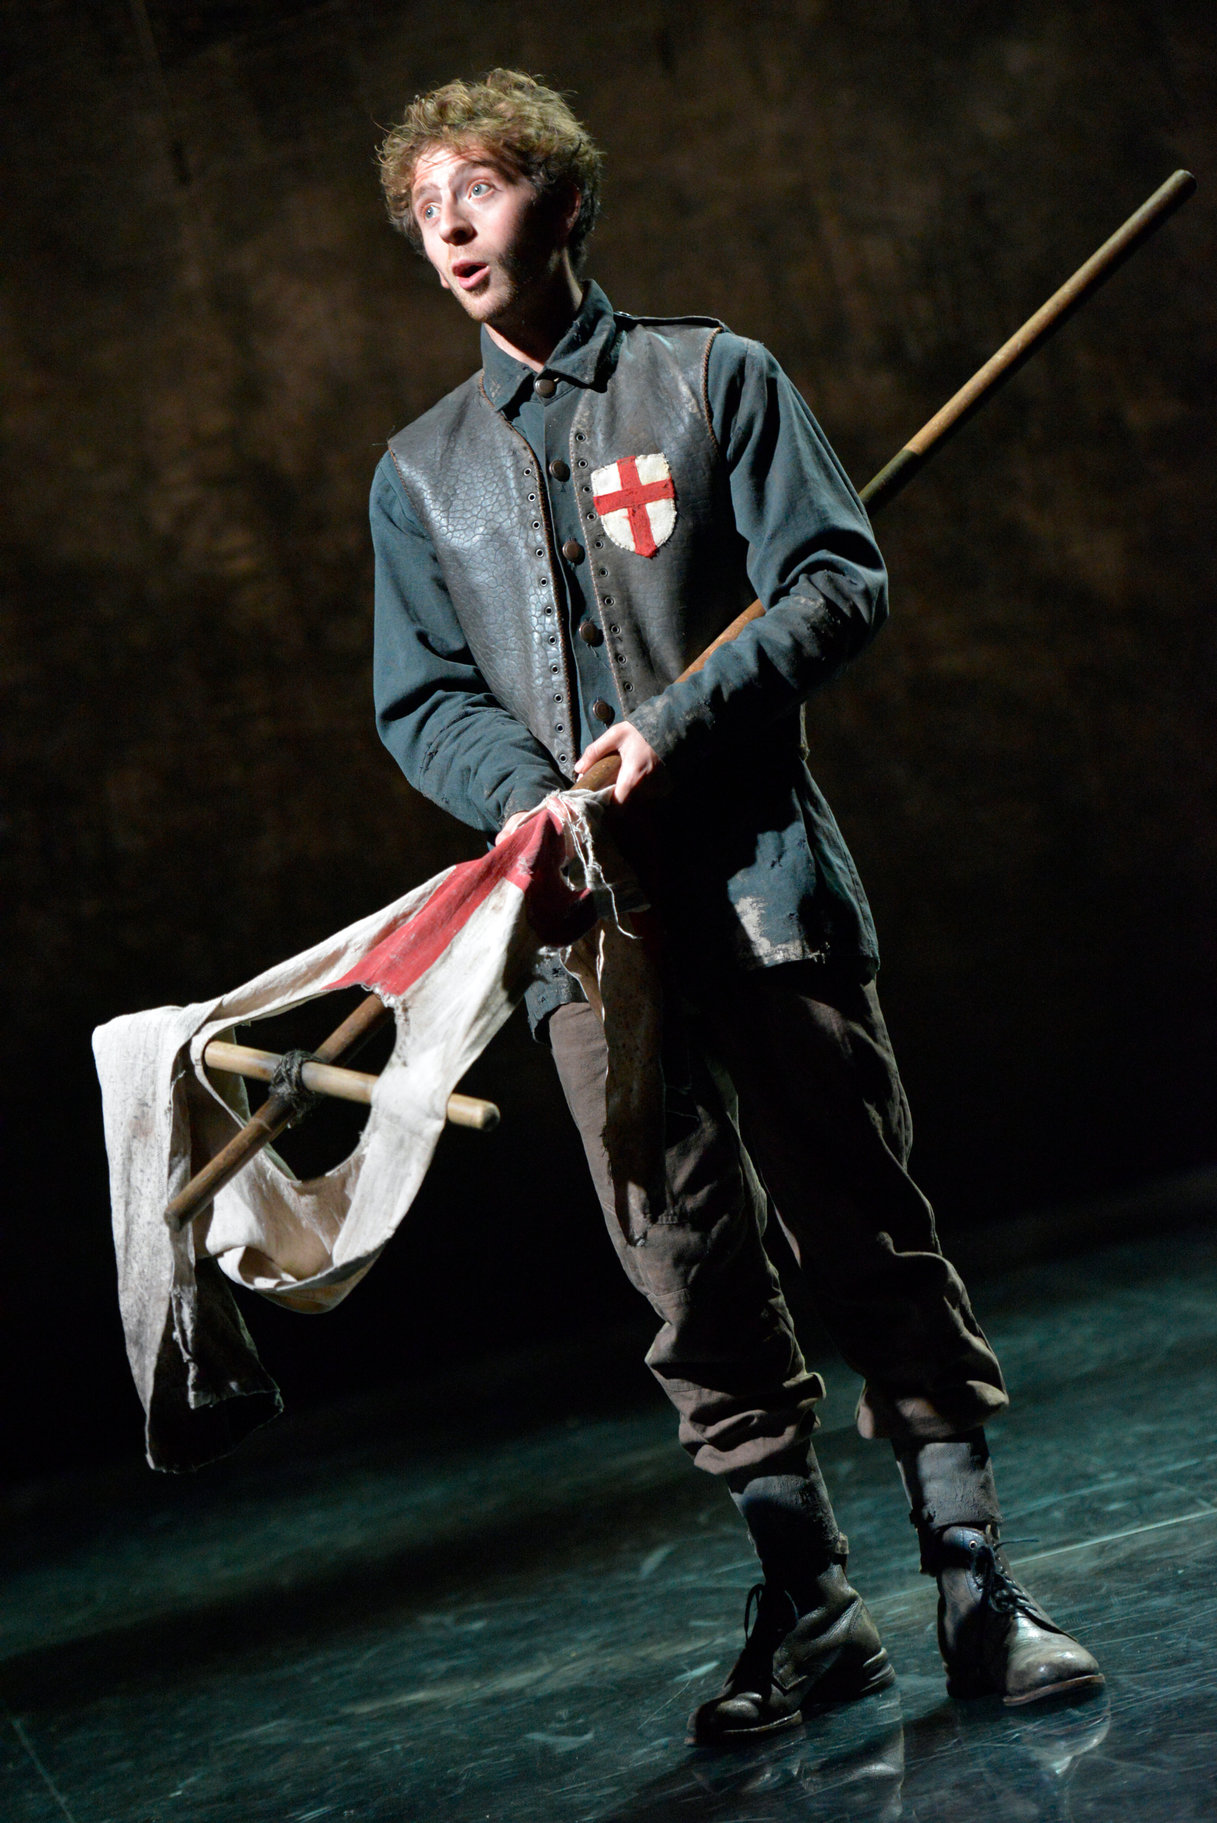 The Boy holding an English flag which has been torn, ready to speak, in the 2015 production of Henry V